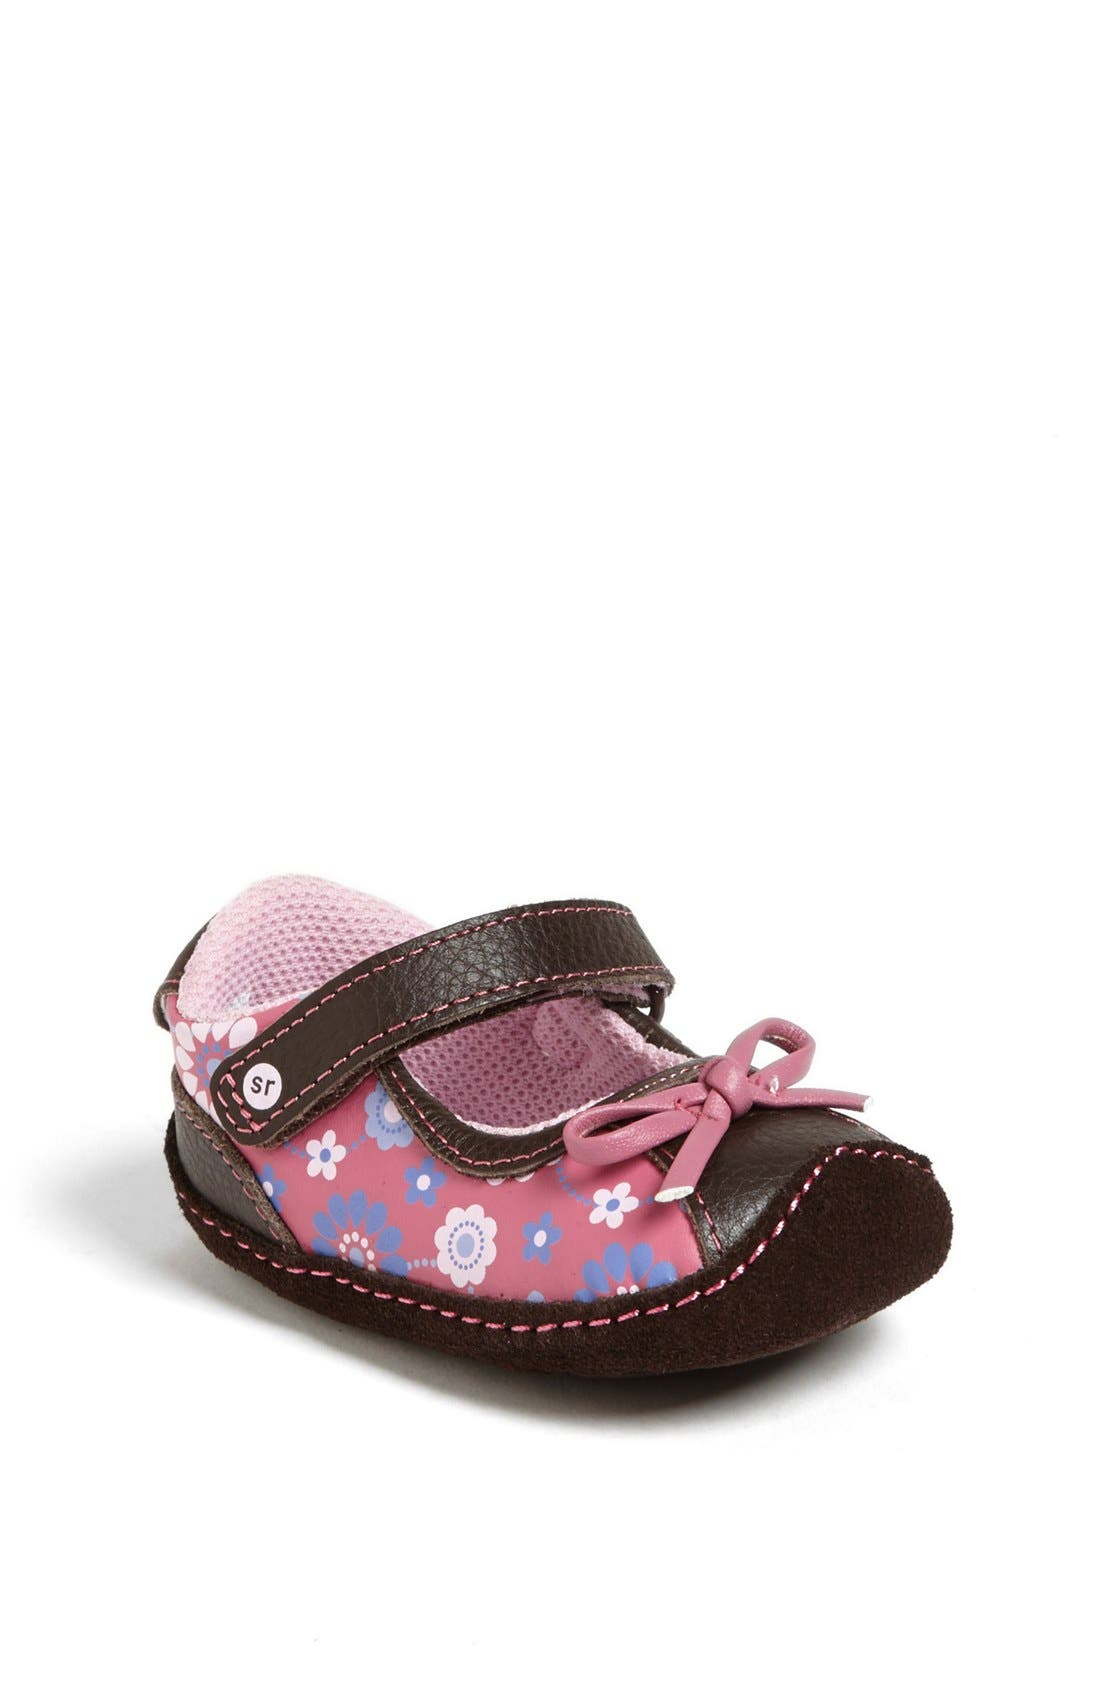 Alternate Image 1 Selected - Stride Rite 'Crawl - Dazzling Donna' Mary Jane (Baby Girls)